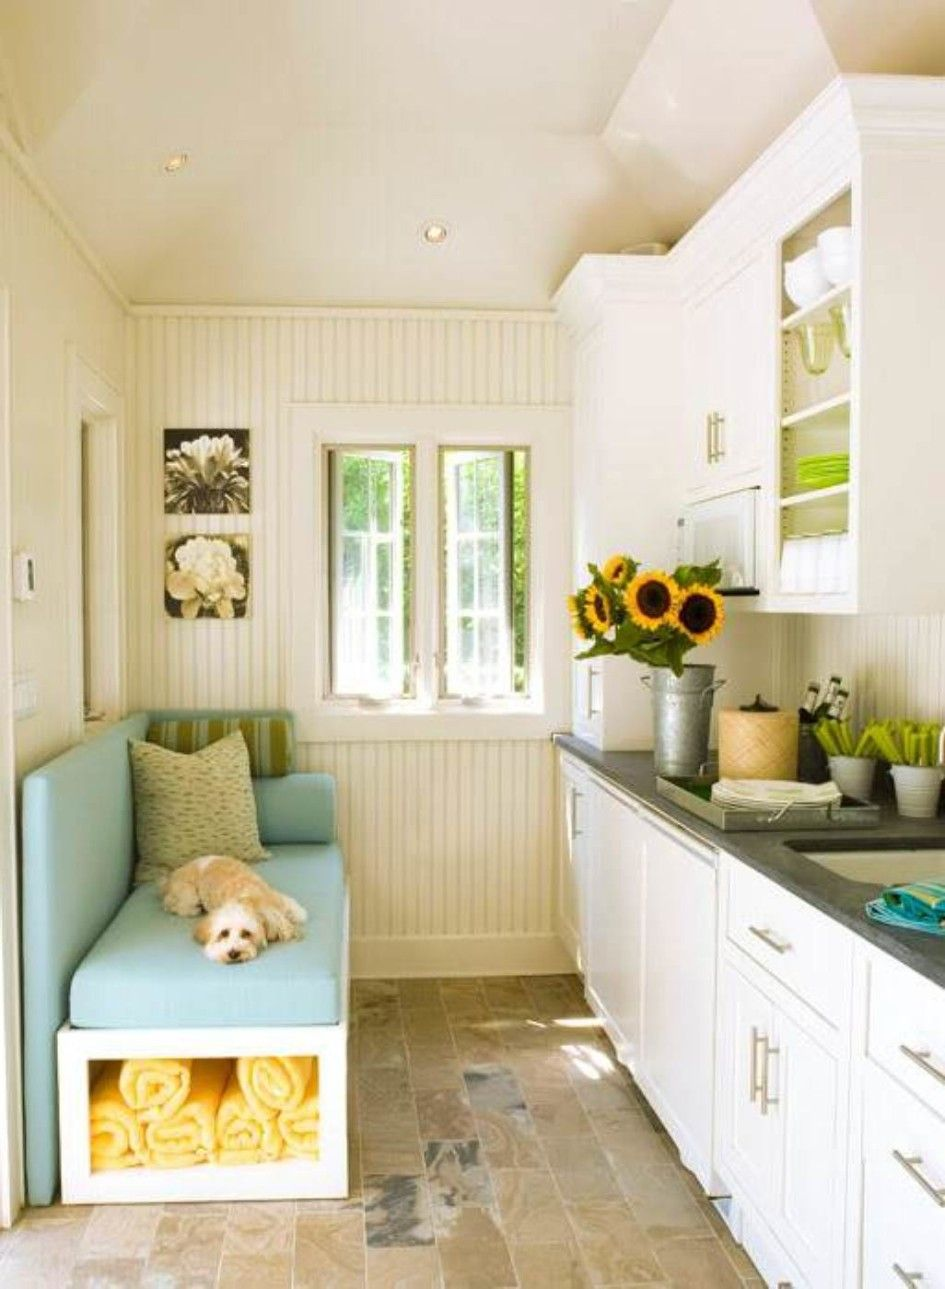 Beautiful Small Kitchen Ideas Part - 39: Download Beautiful Small House And Home Decorating Ideas For Very Small  Kitchen With Small Compact Kitchen